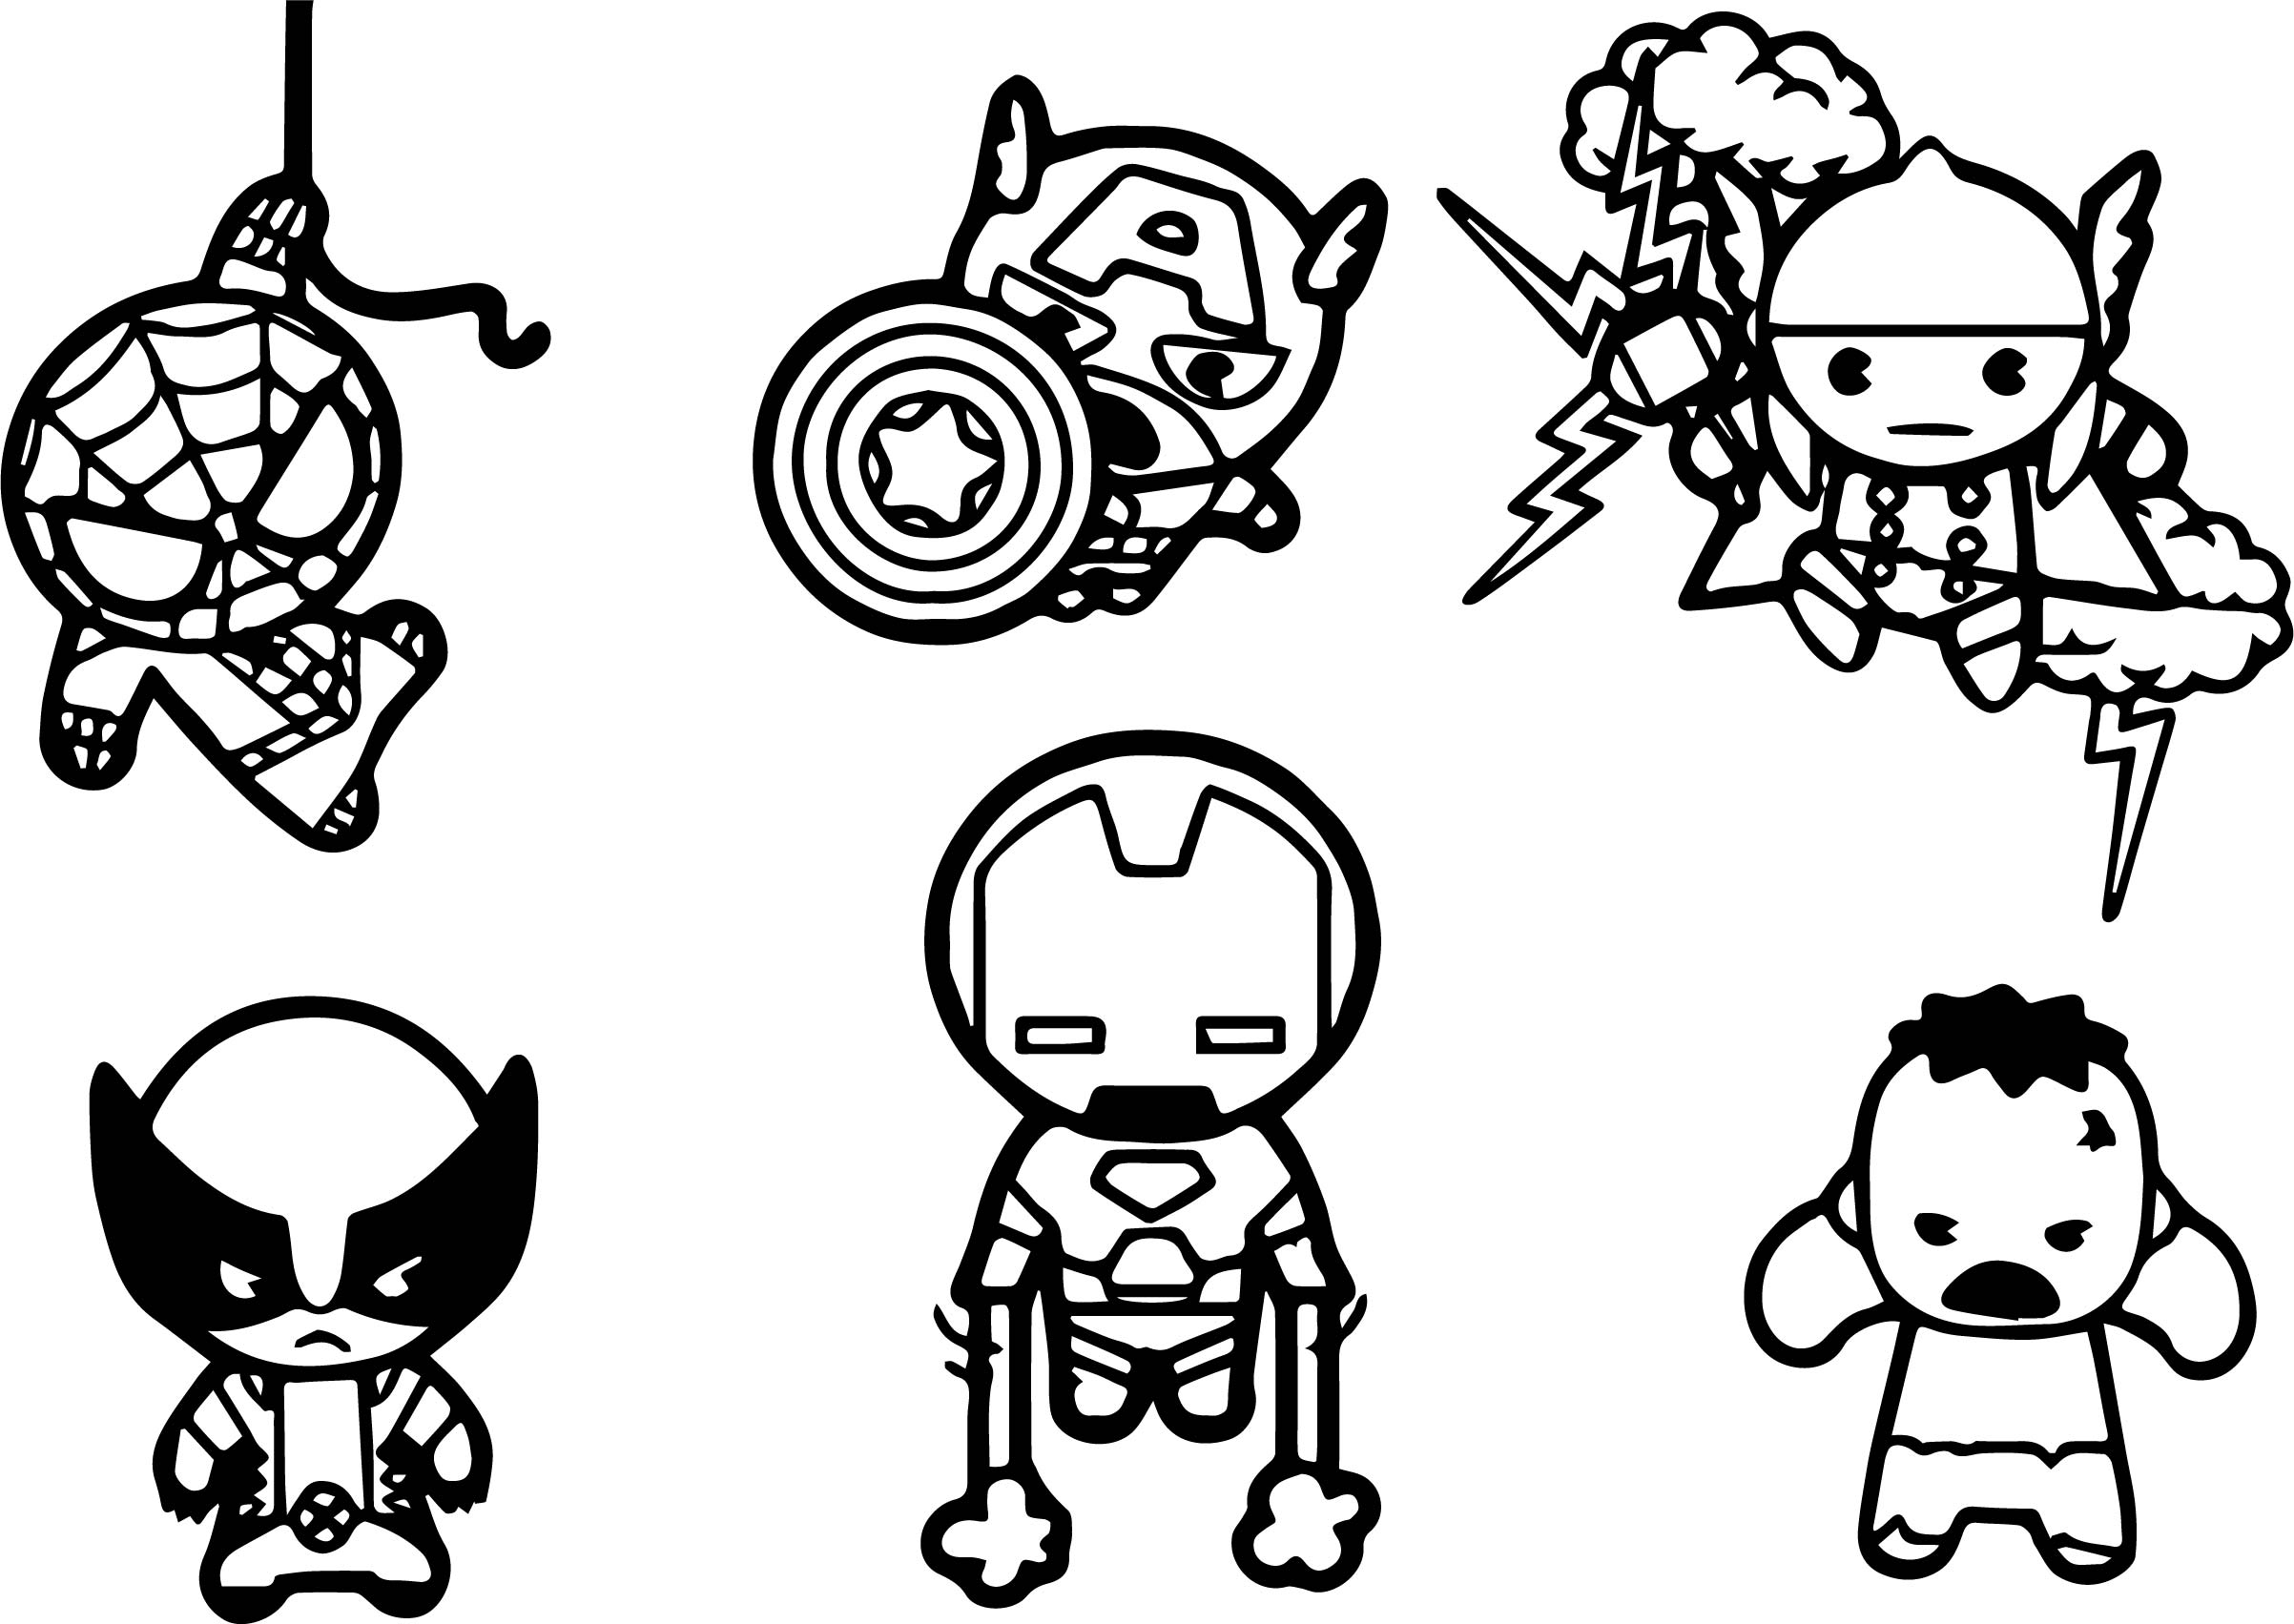 Avengers Baby Chibi Characters Coloring Page